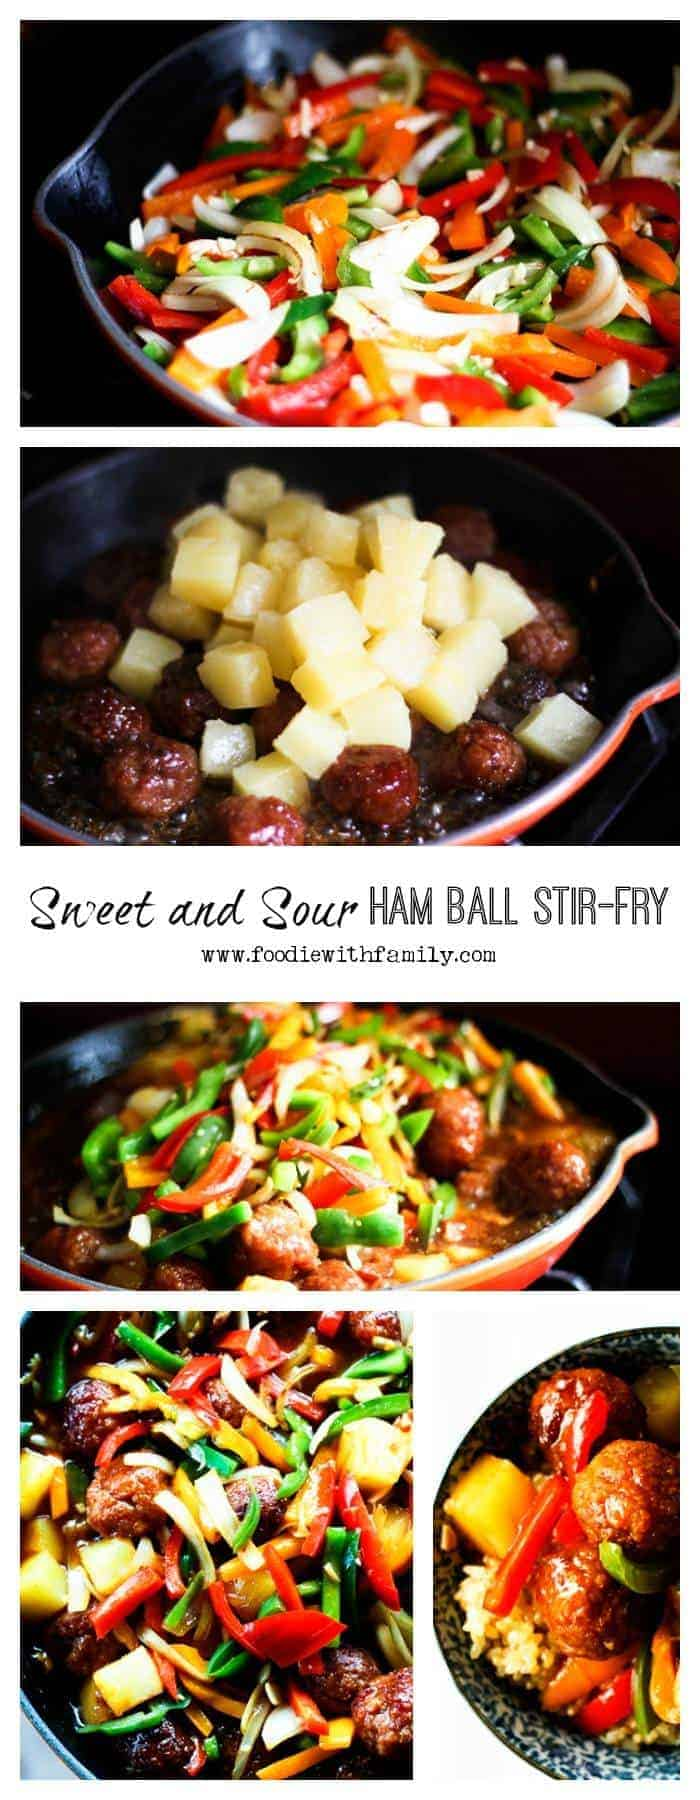 Super fast, delicious, Sweet and Sour Ham Ball Stir Fry from foodiewithfamily.com